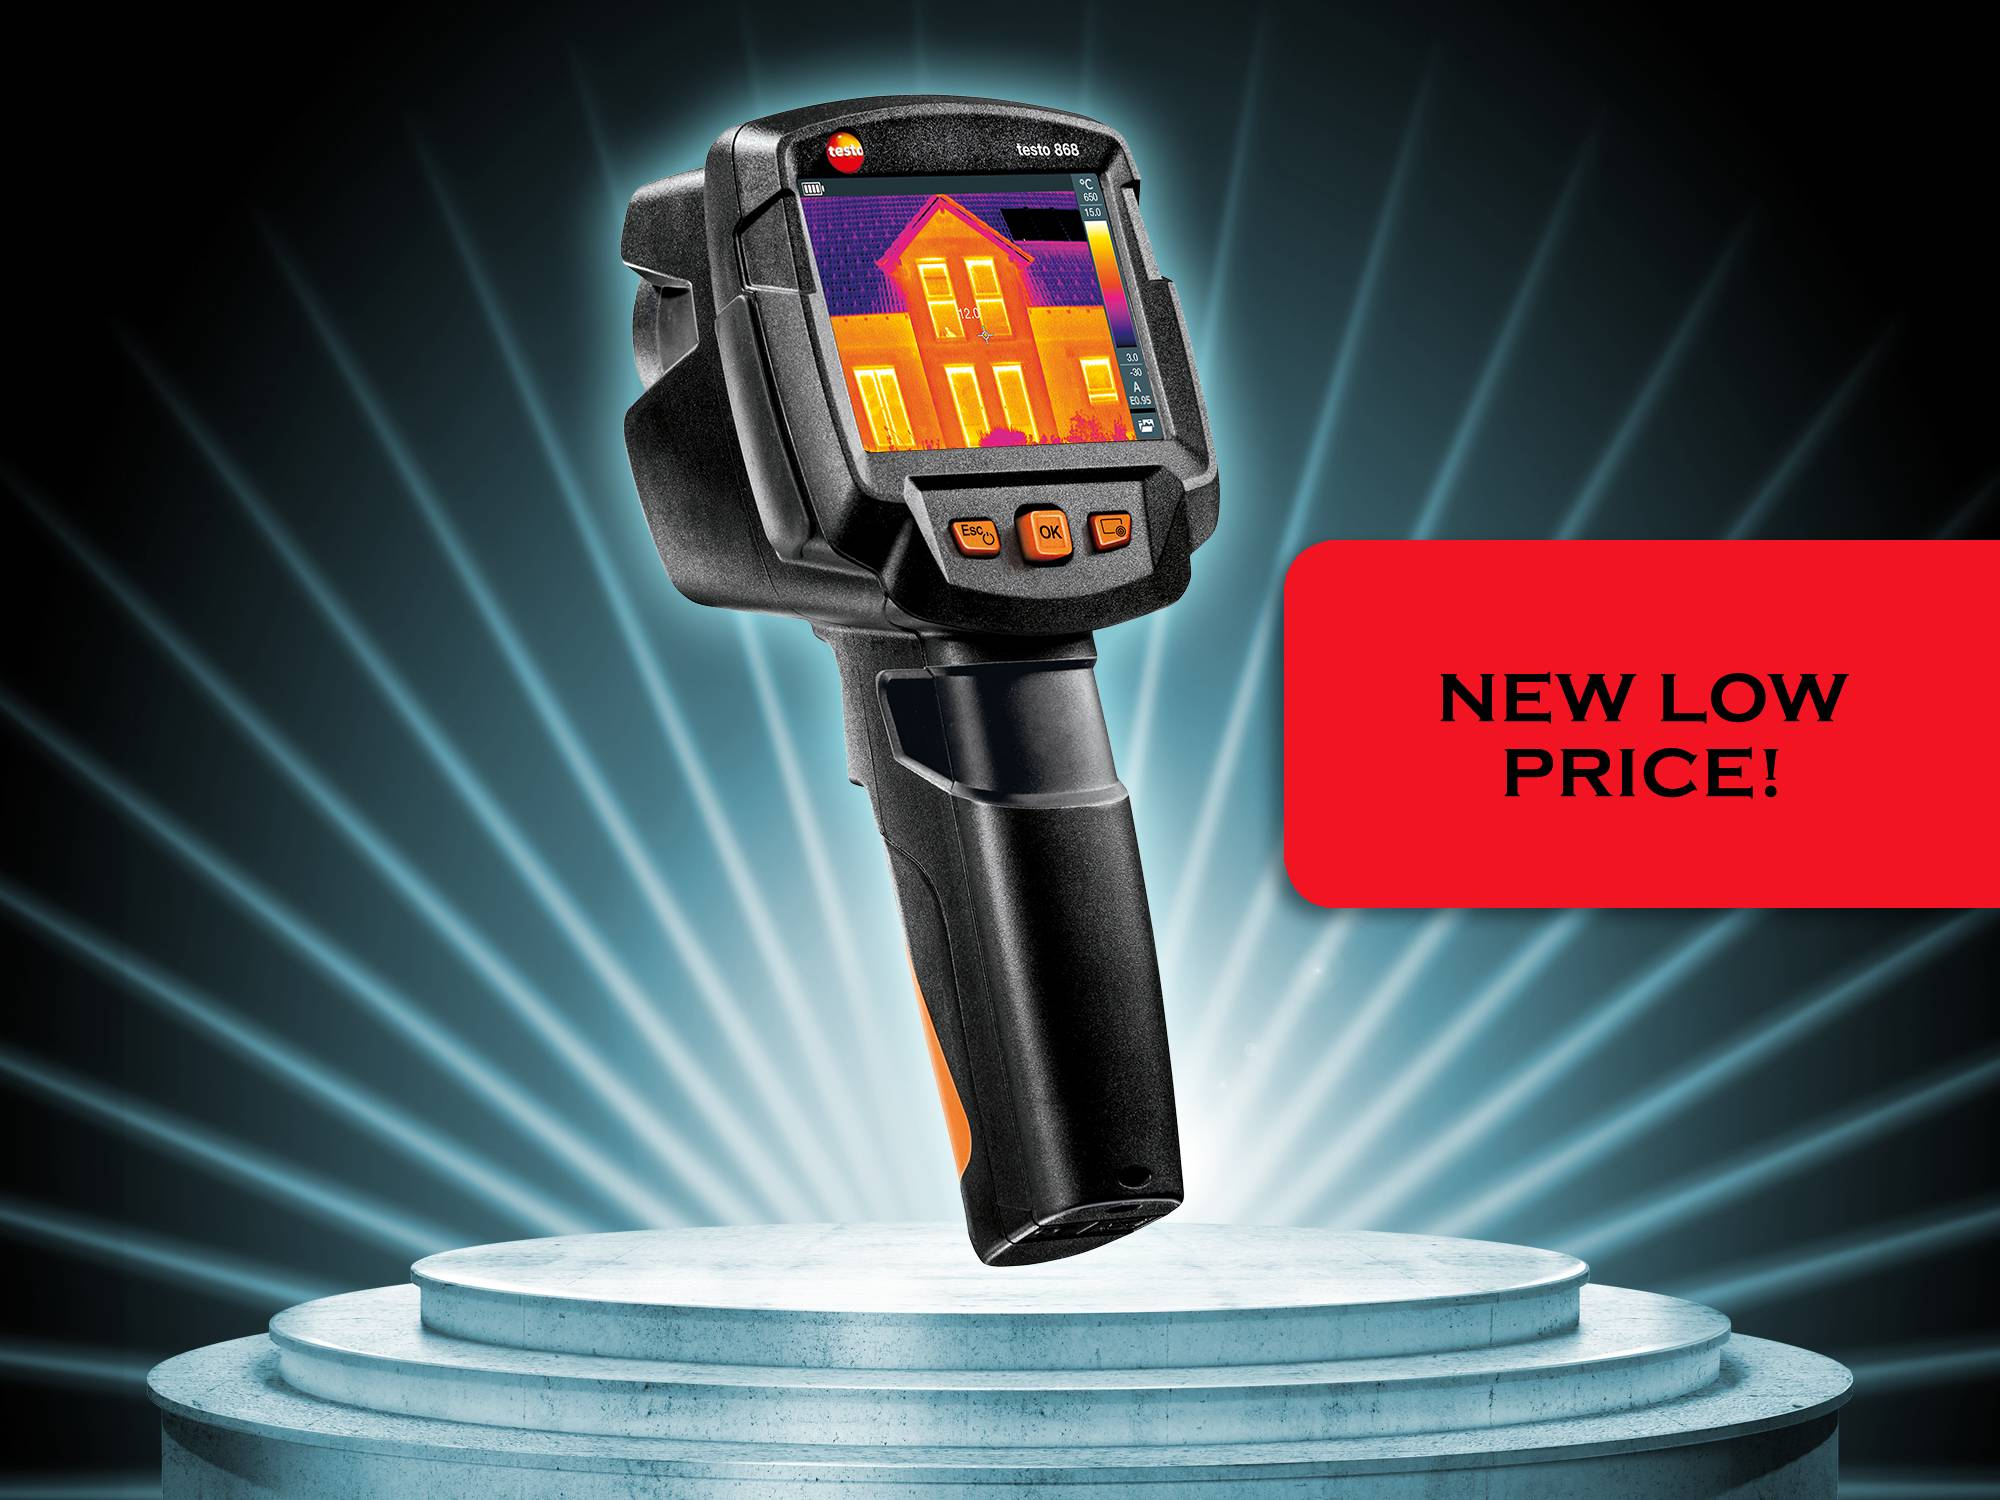 Thermal Imager Promotion